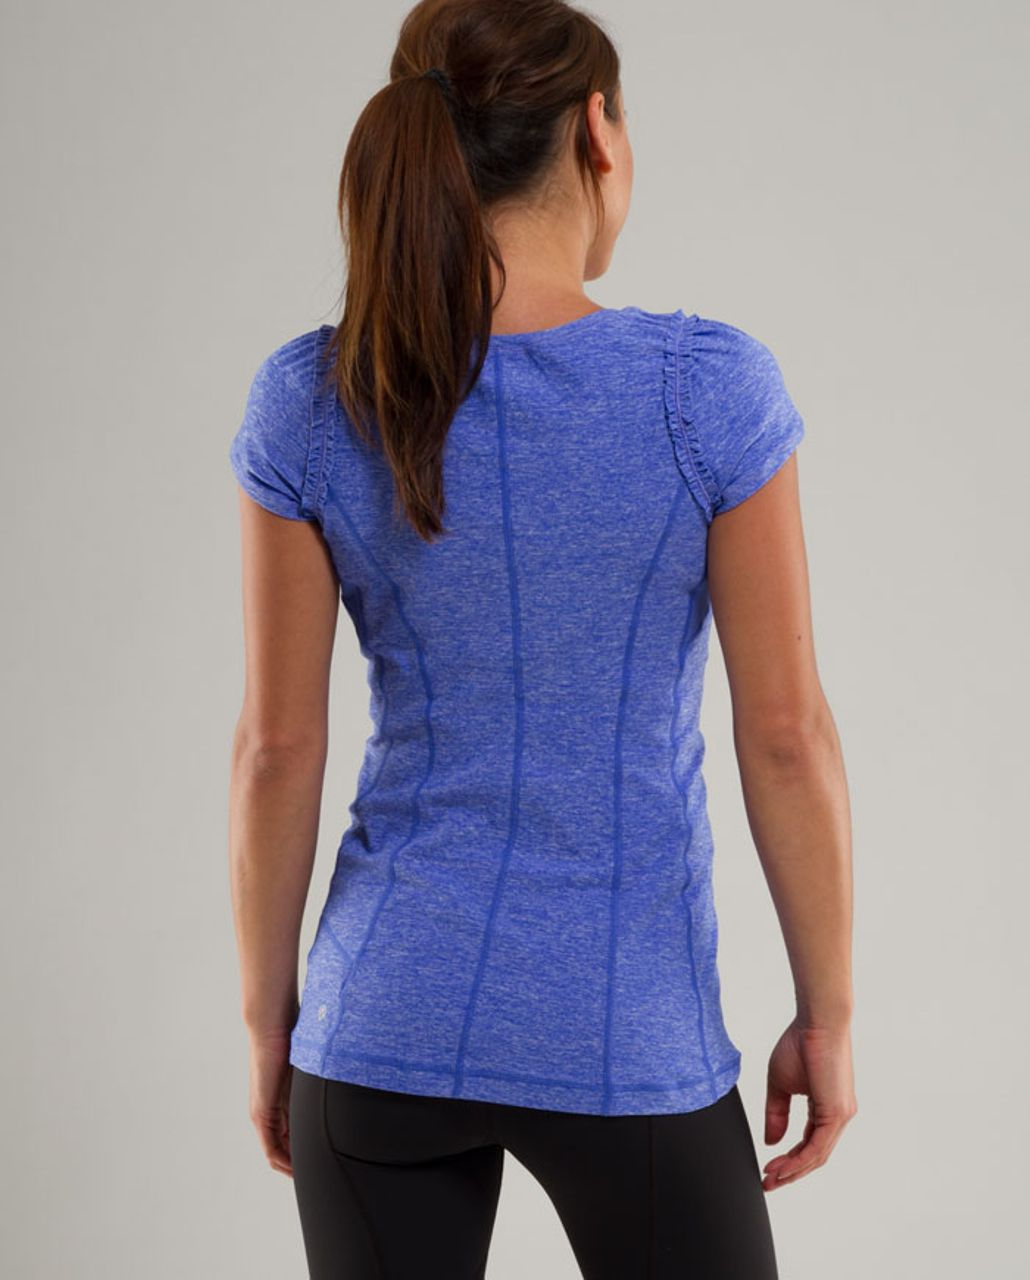 Lululemon Run:  Full Tilt Short Sleeve - Heathered Rocksteady